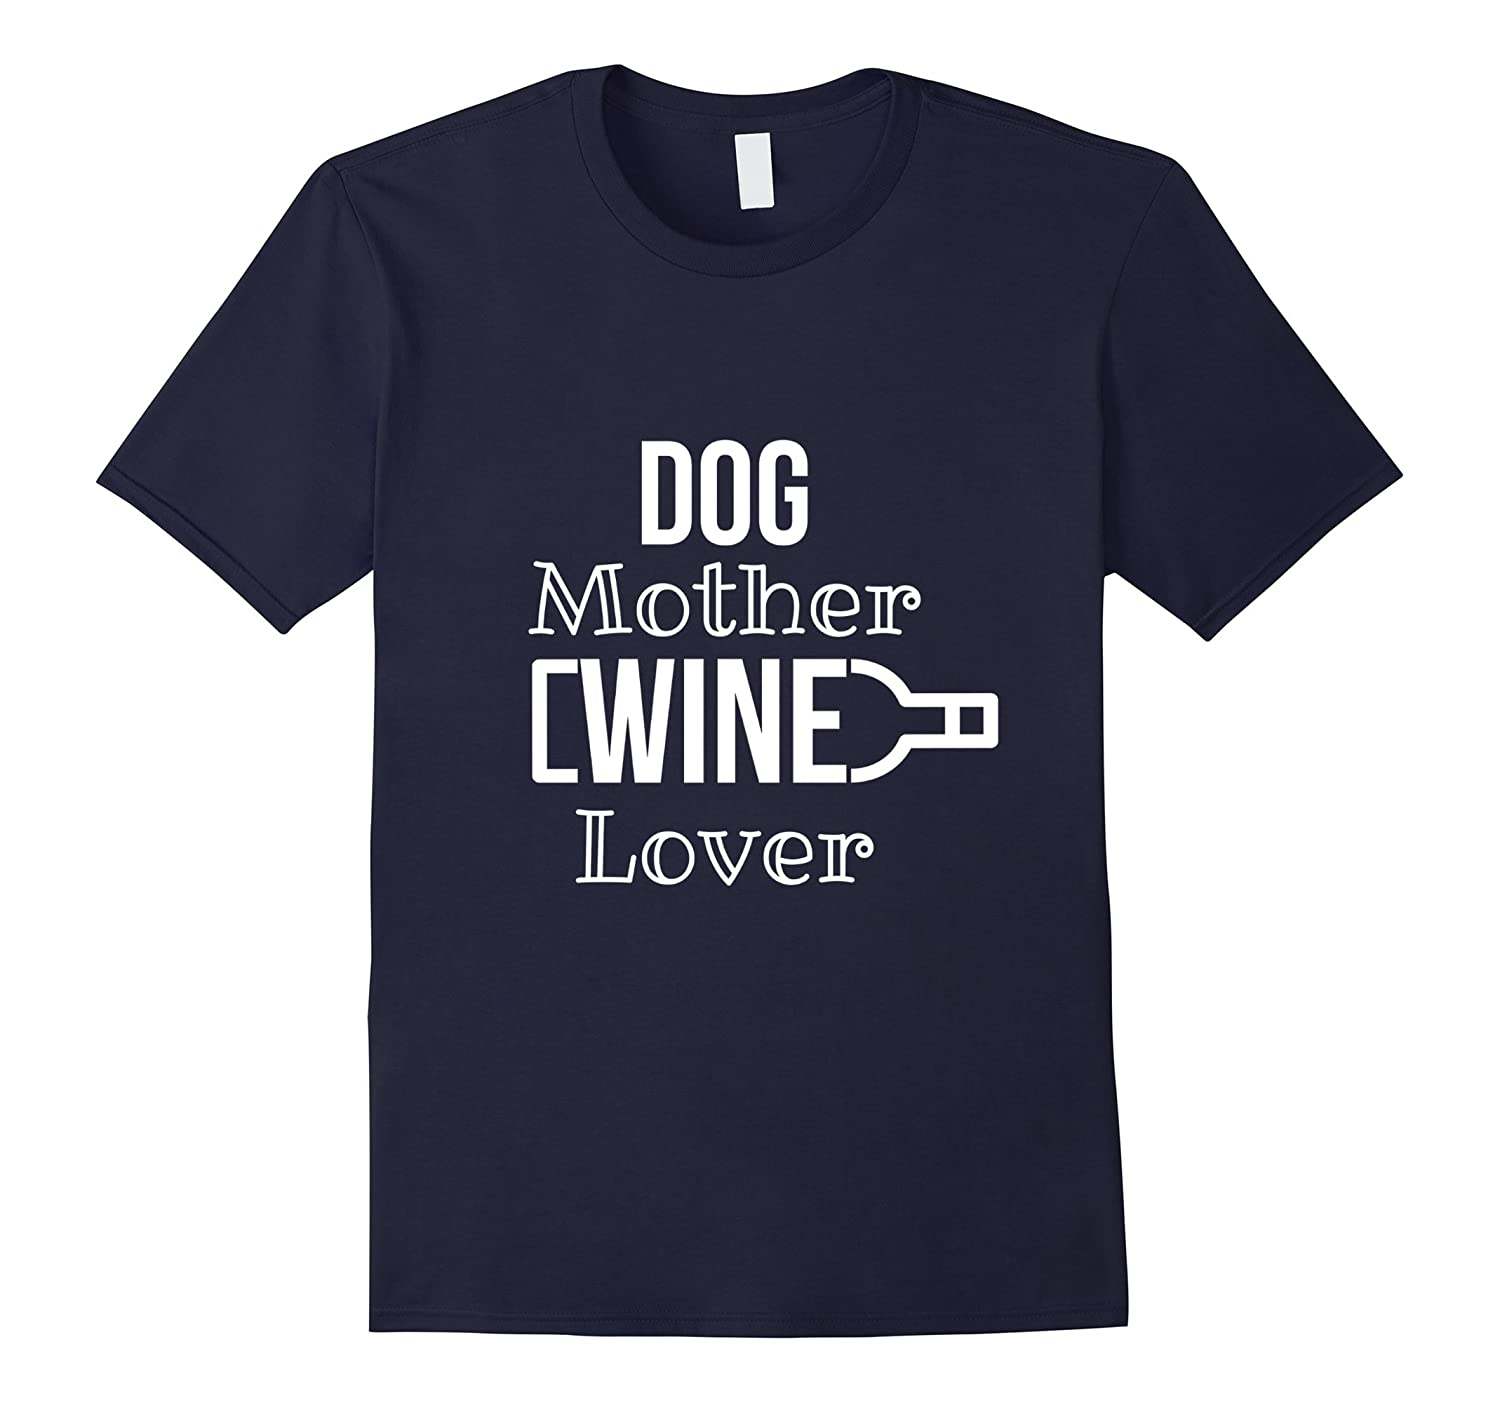 Dog Mother Wine Lover T-Shirt - Funny Dog Mom Drinking Shirt-ANZ